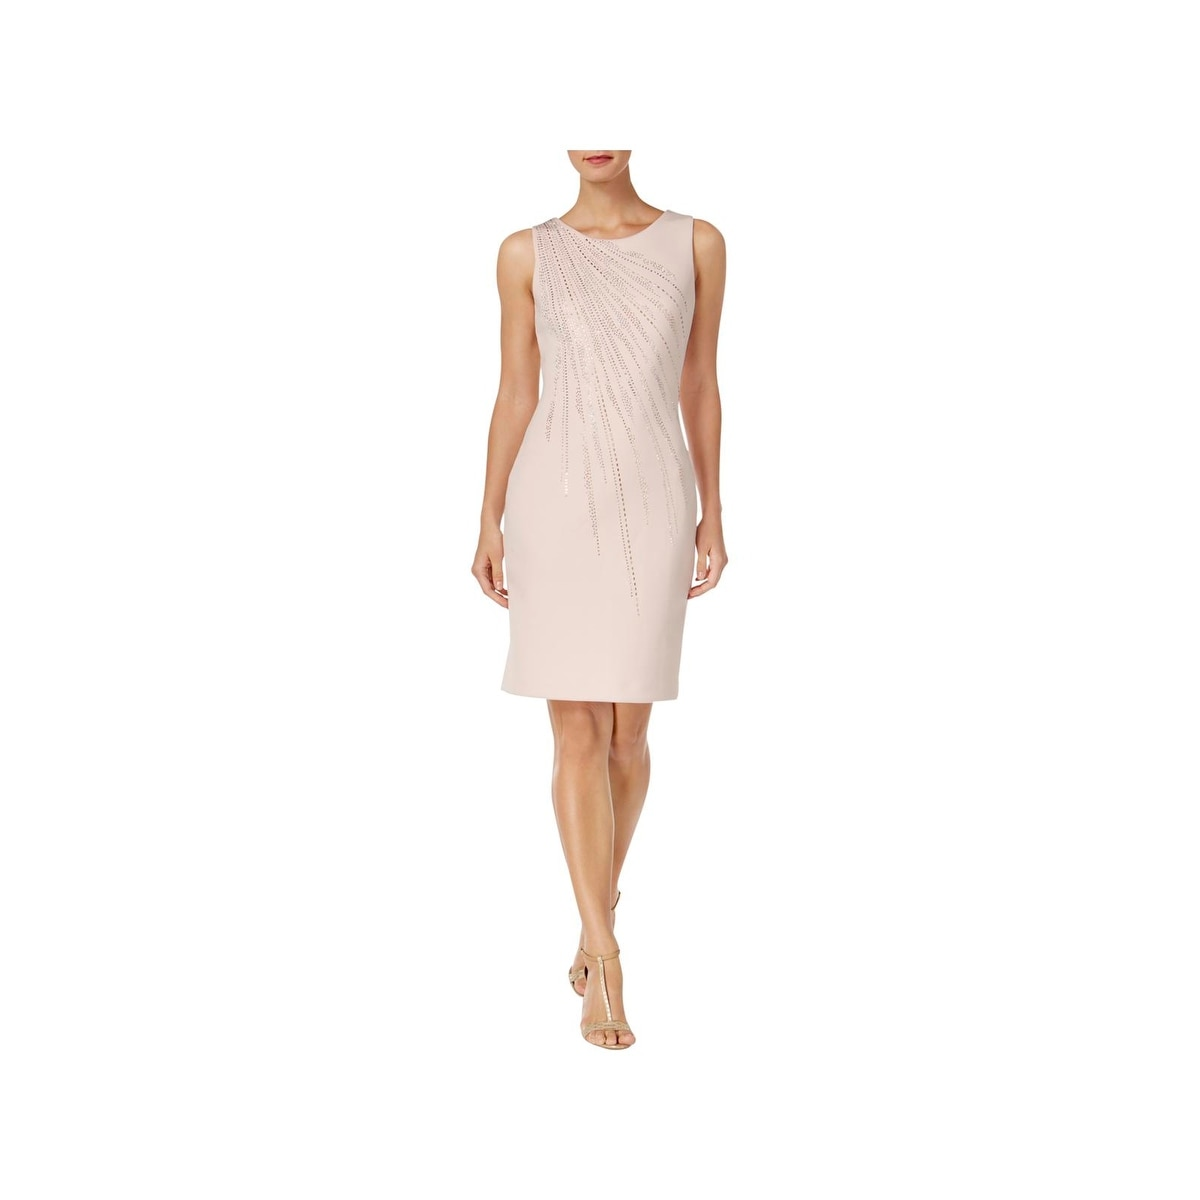 9a5b815b27d5 Calvin Klein Dresses | Find Great Women's Clothing Deals Shopping at  Overstock